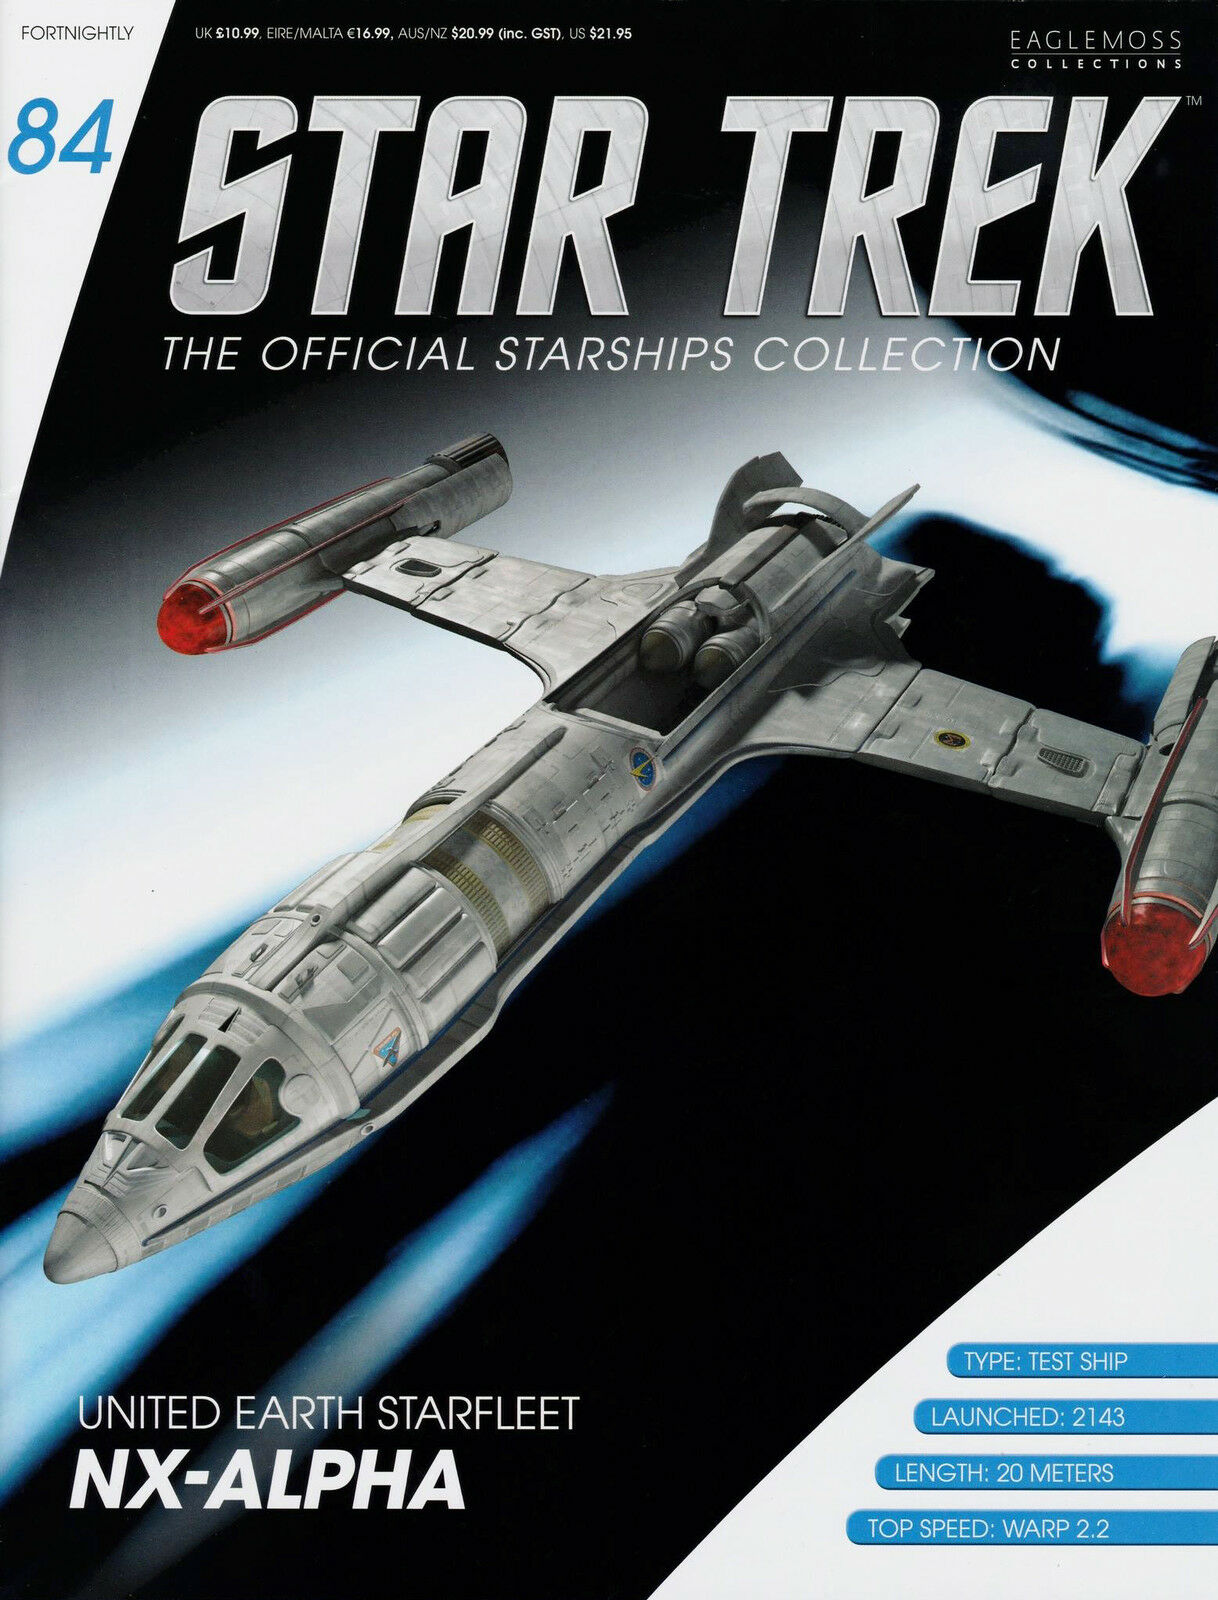 United Earth Starfleet NX-Alpha Model Ship  Metall Metall Metall Modell Diecast neu ovp 1faef8